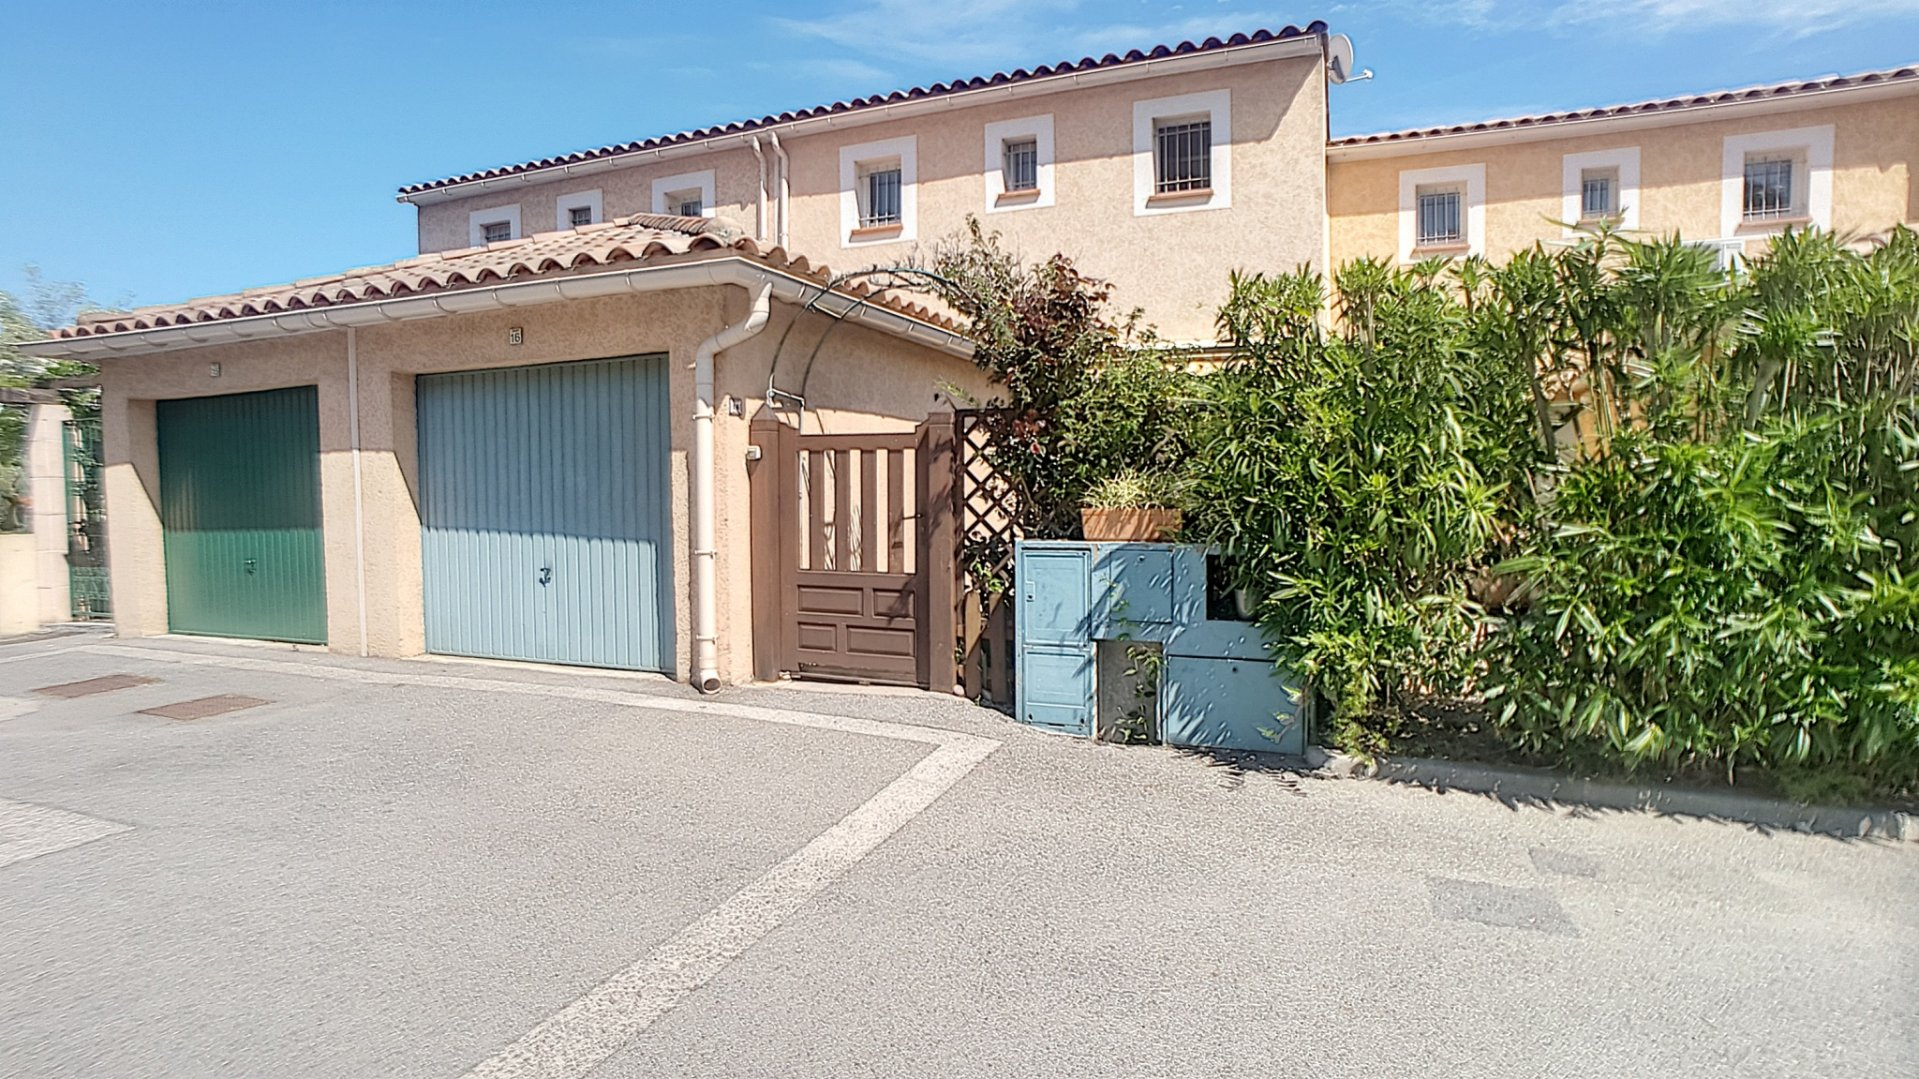 Affitto stagionale Casa - Antibes